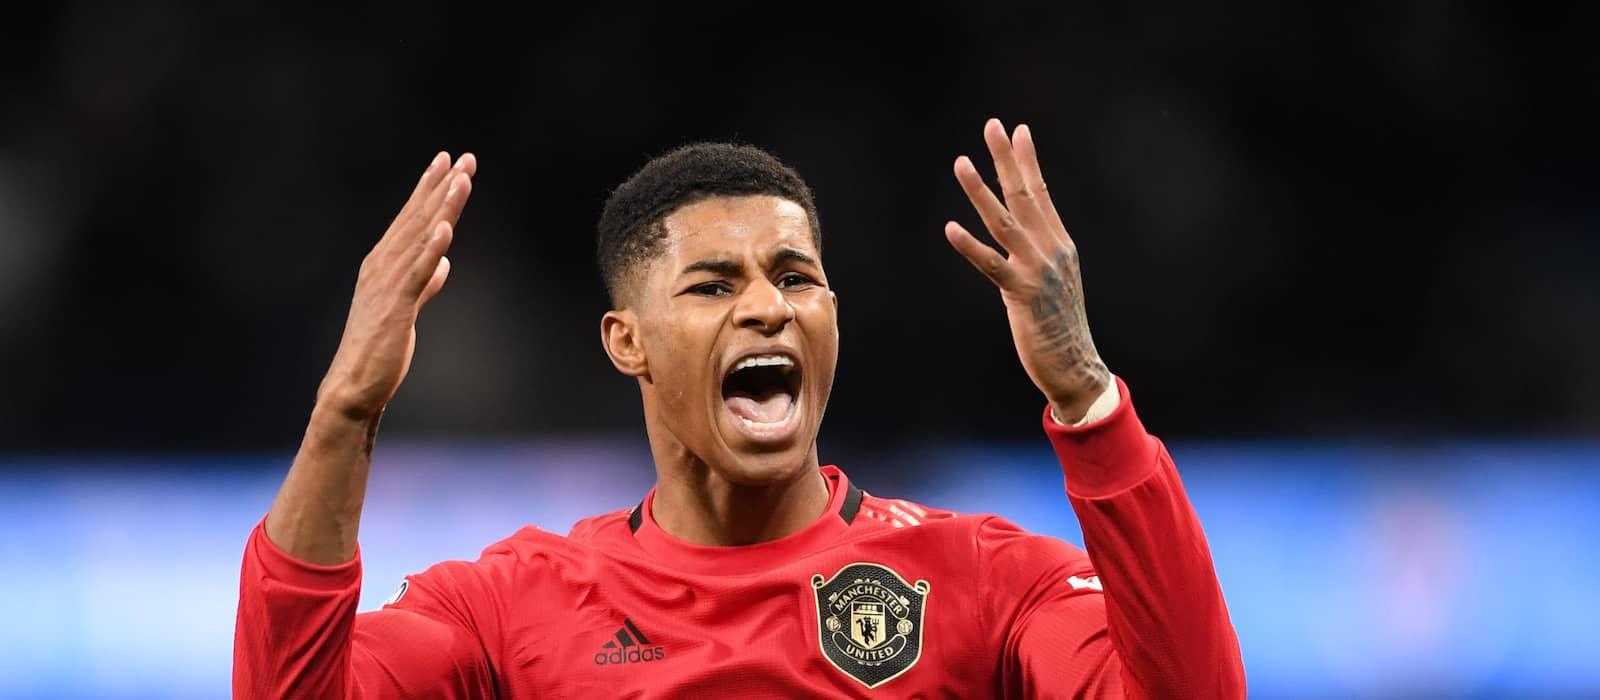 Marcus Rashford could play 18 more games this season